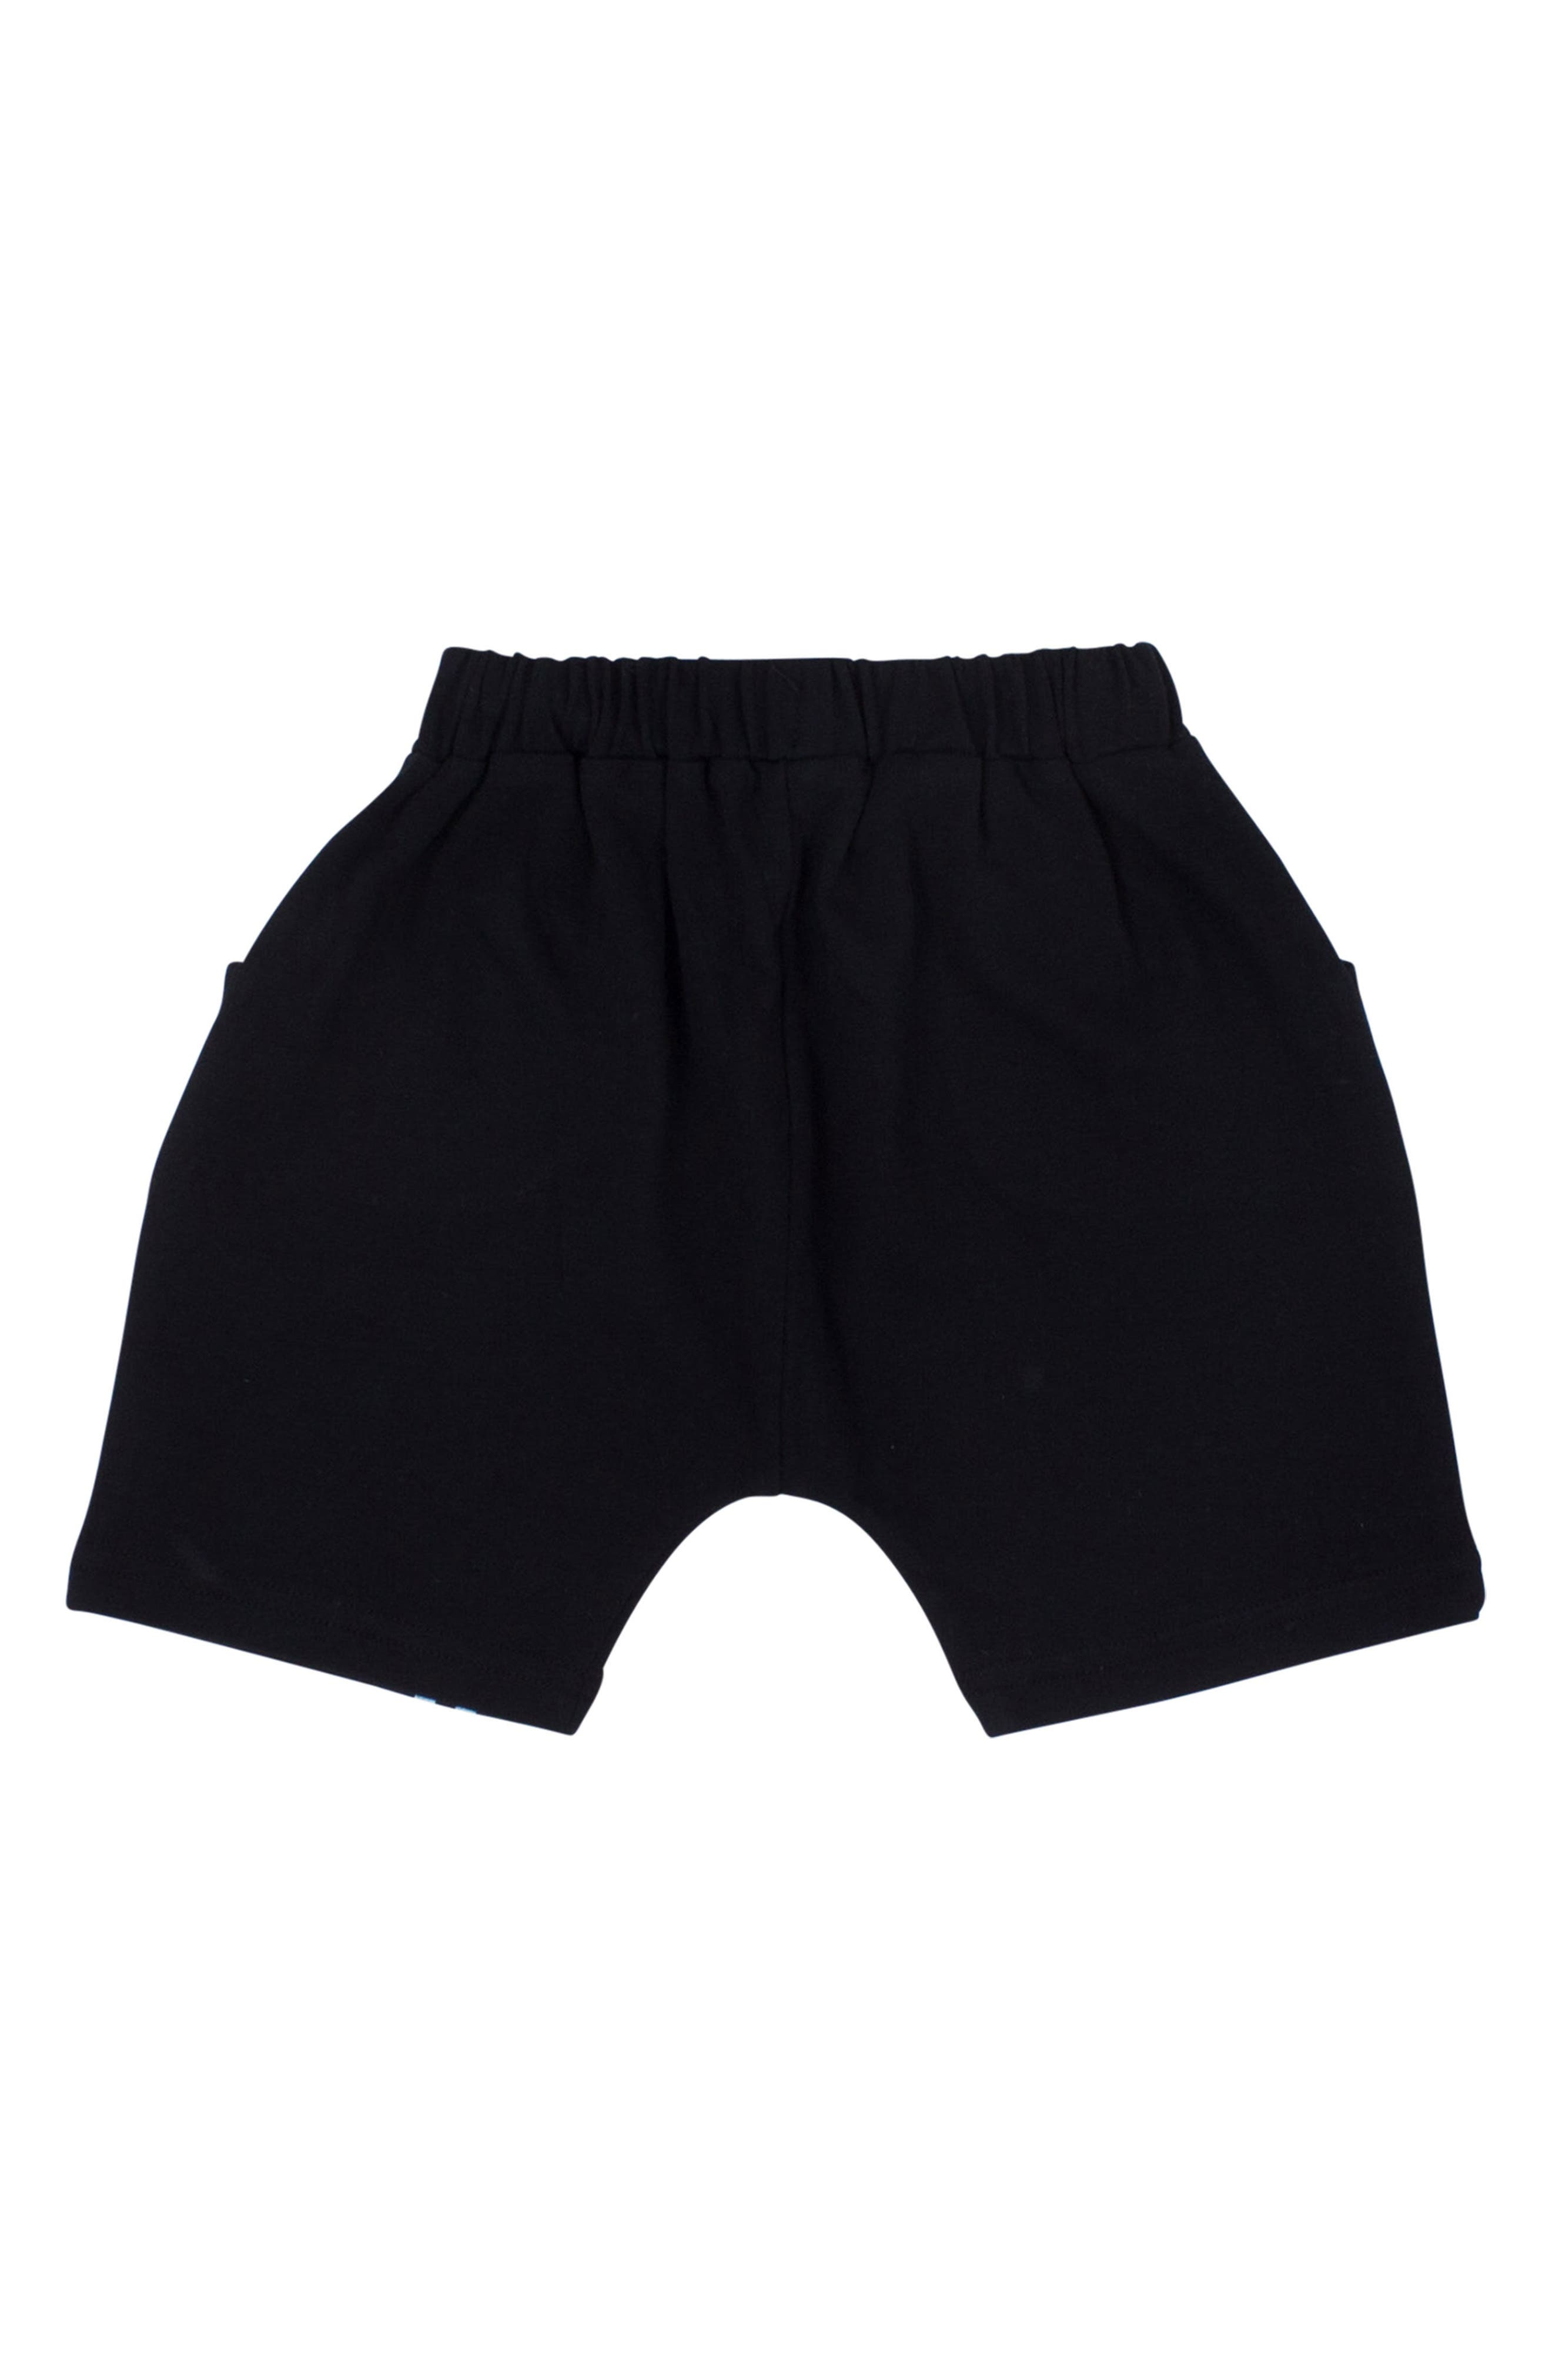 Pause Relaxed Shorts,                             Alternate thumbnail 2, color,                             001